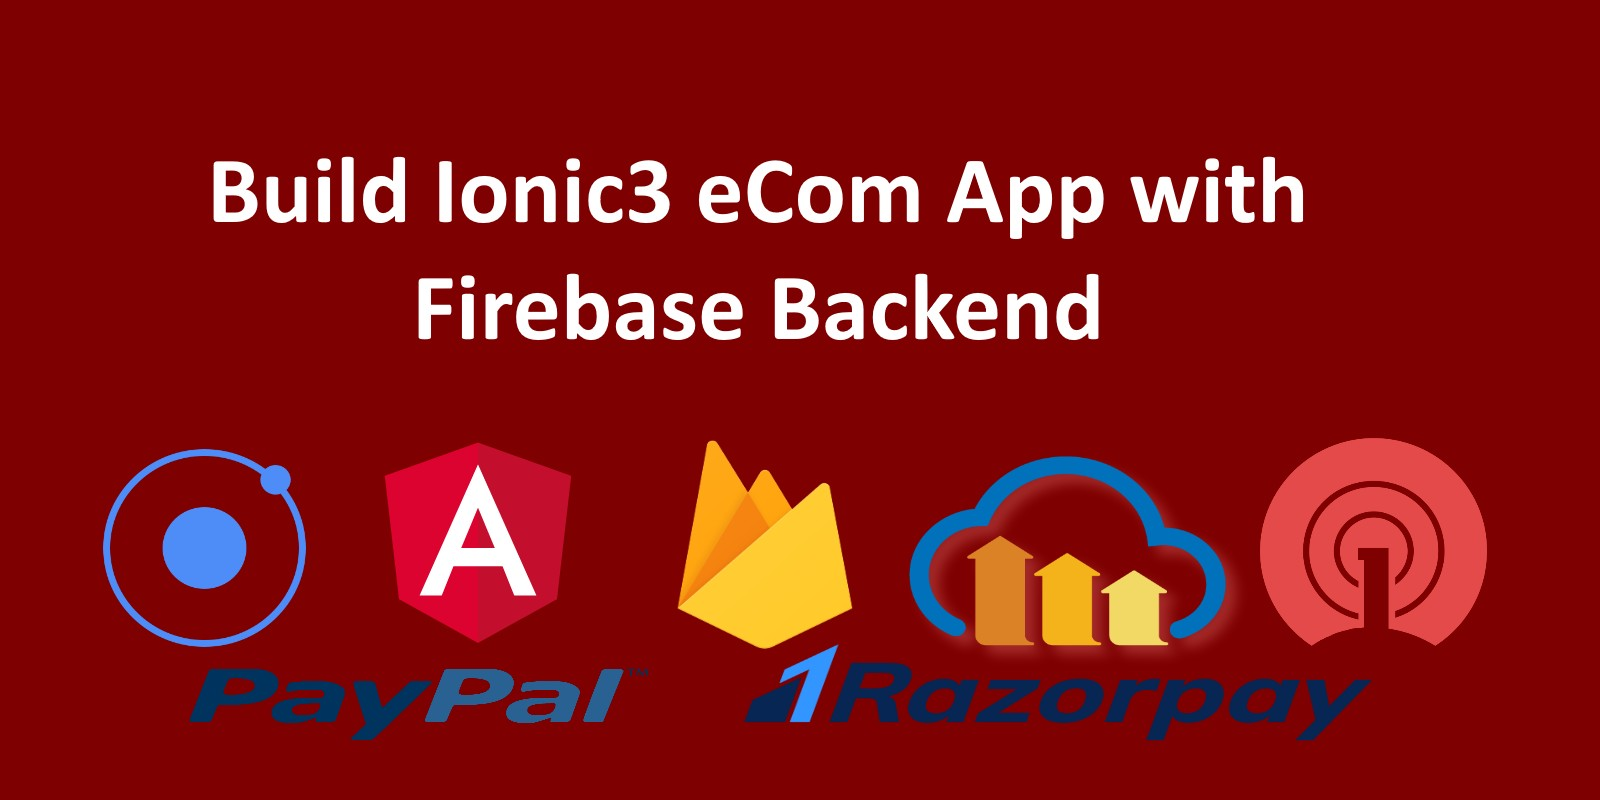 Ionic3 eCom App with Firebase Backend